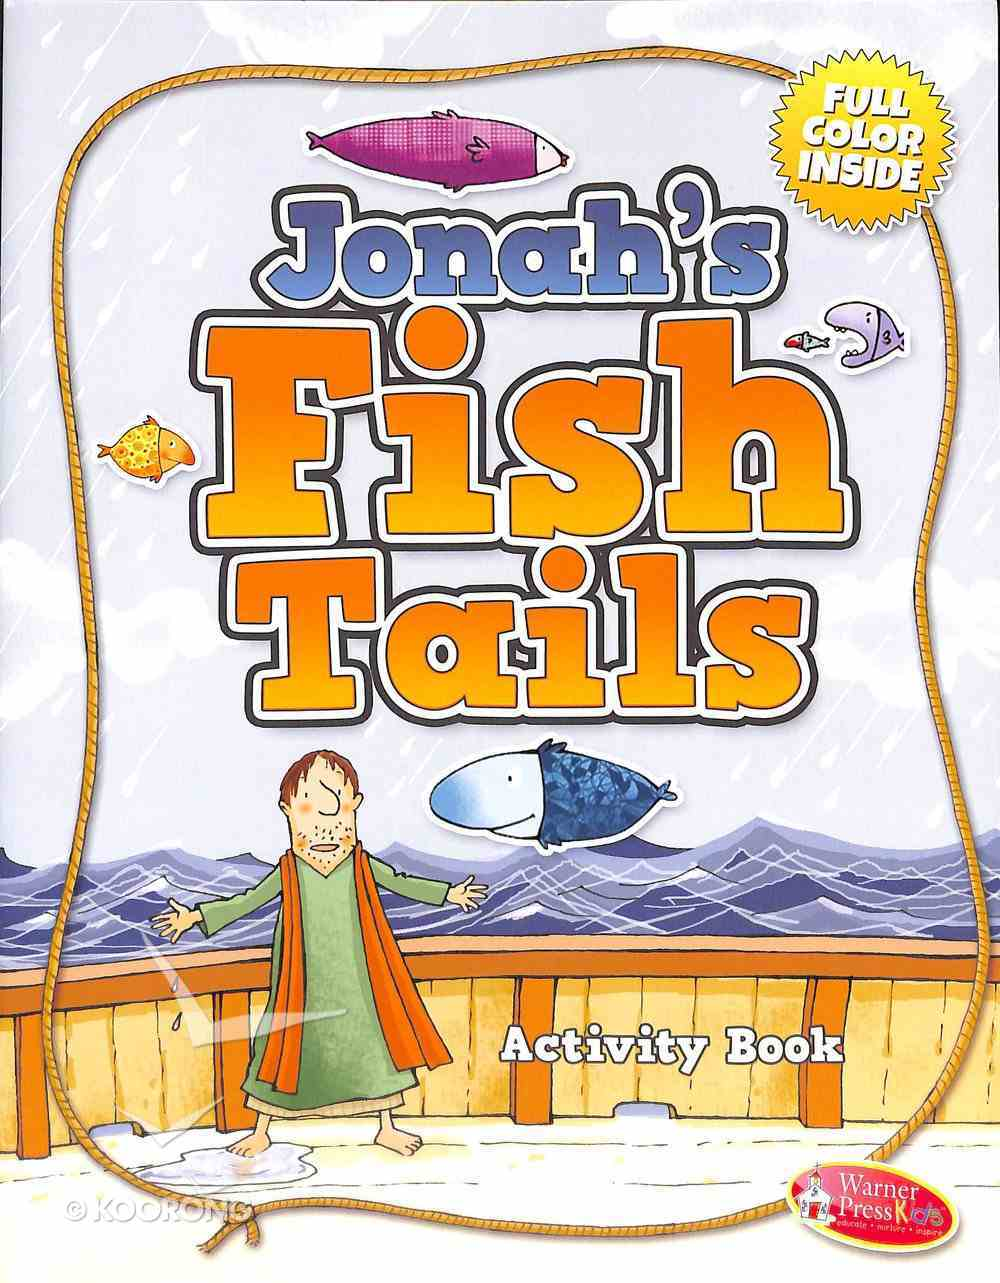 Activity Book: Jonah's Fish Tails Ages 4-7 Paperback